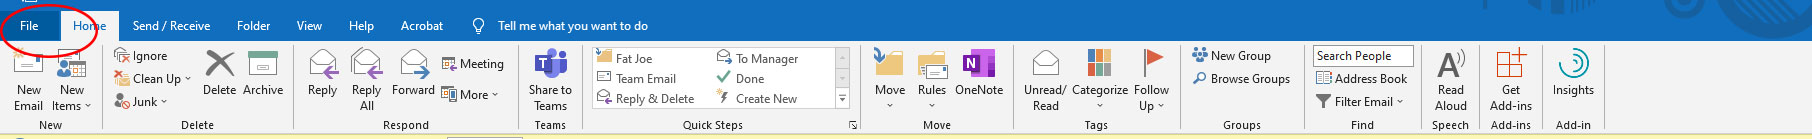 Export Contact List From Outlook 1 - Choose File